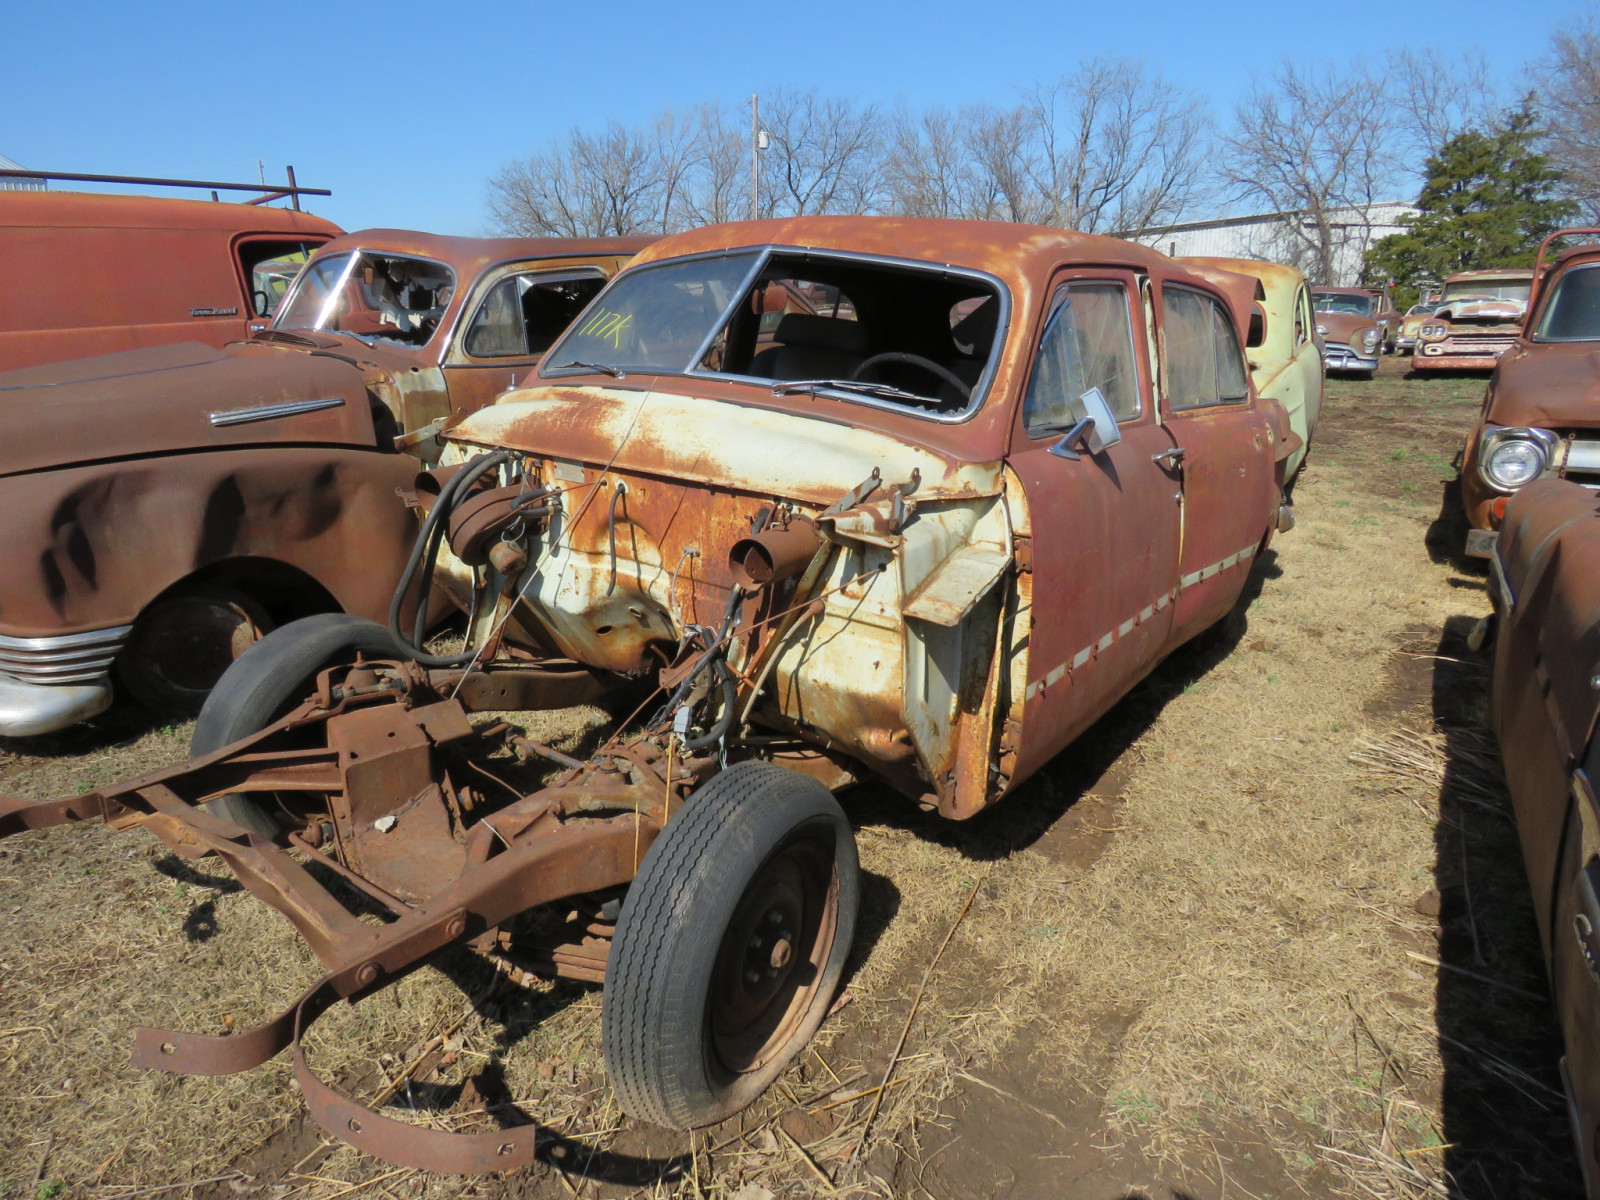 1951 Ford Sedan for parts - Image 2